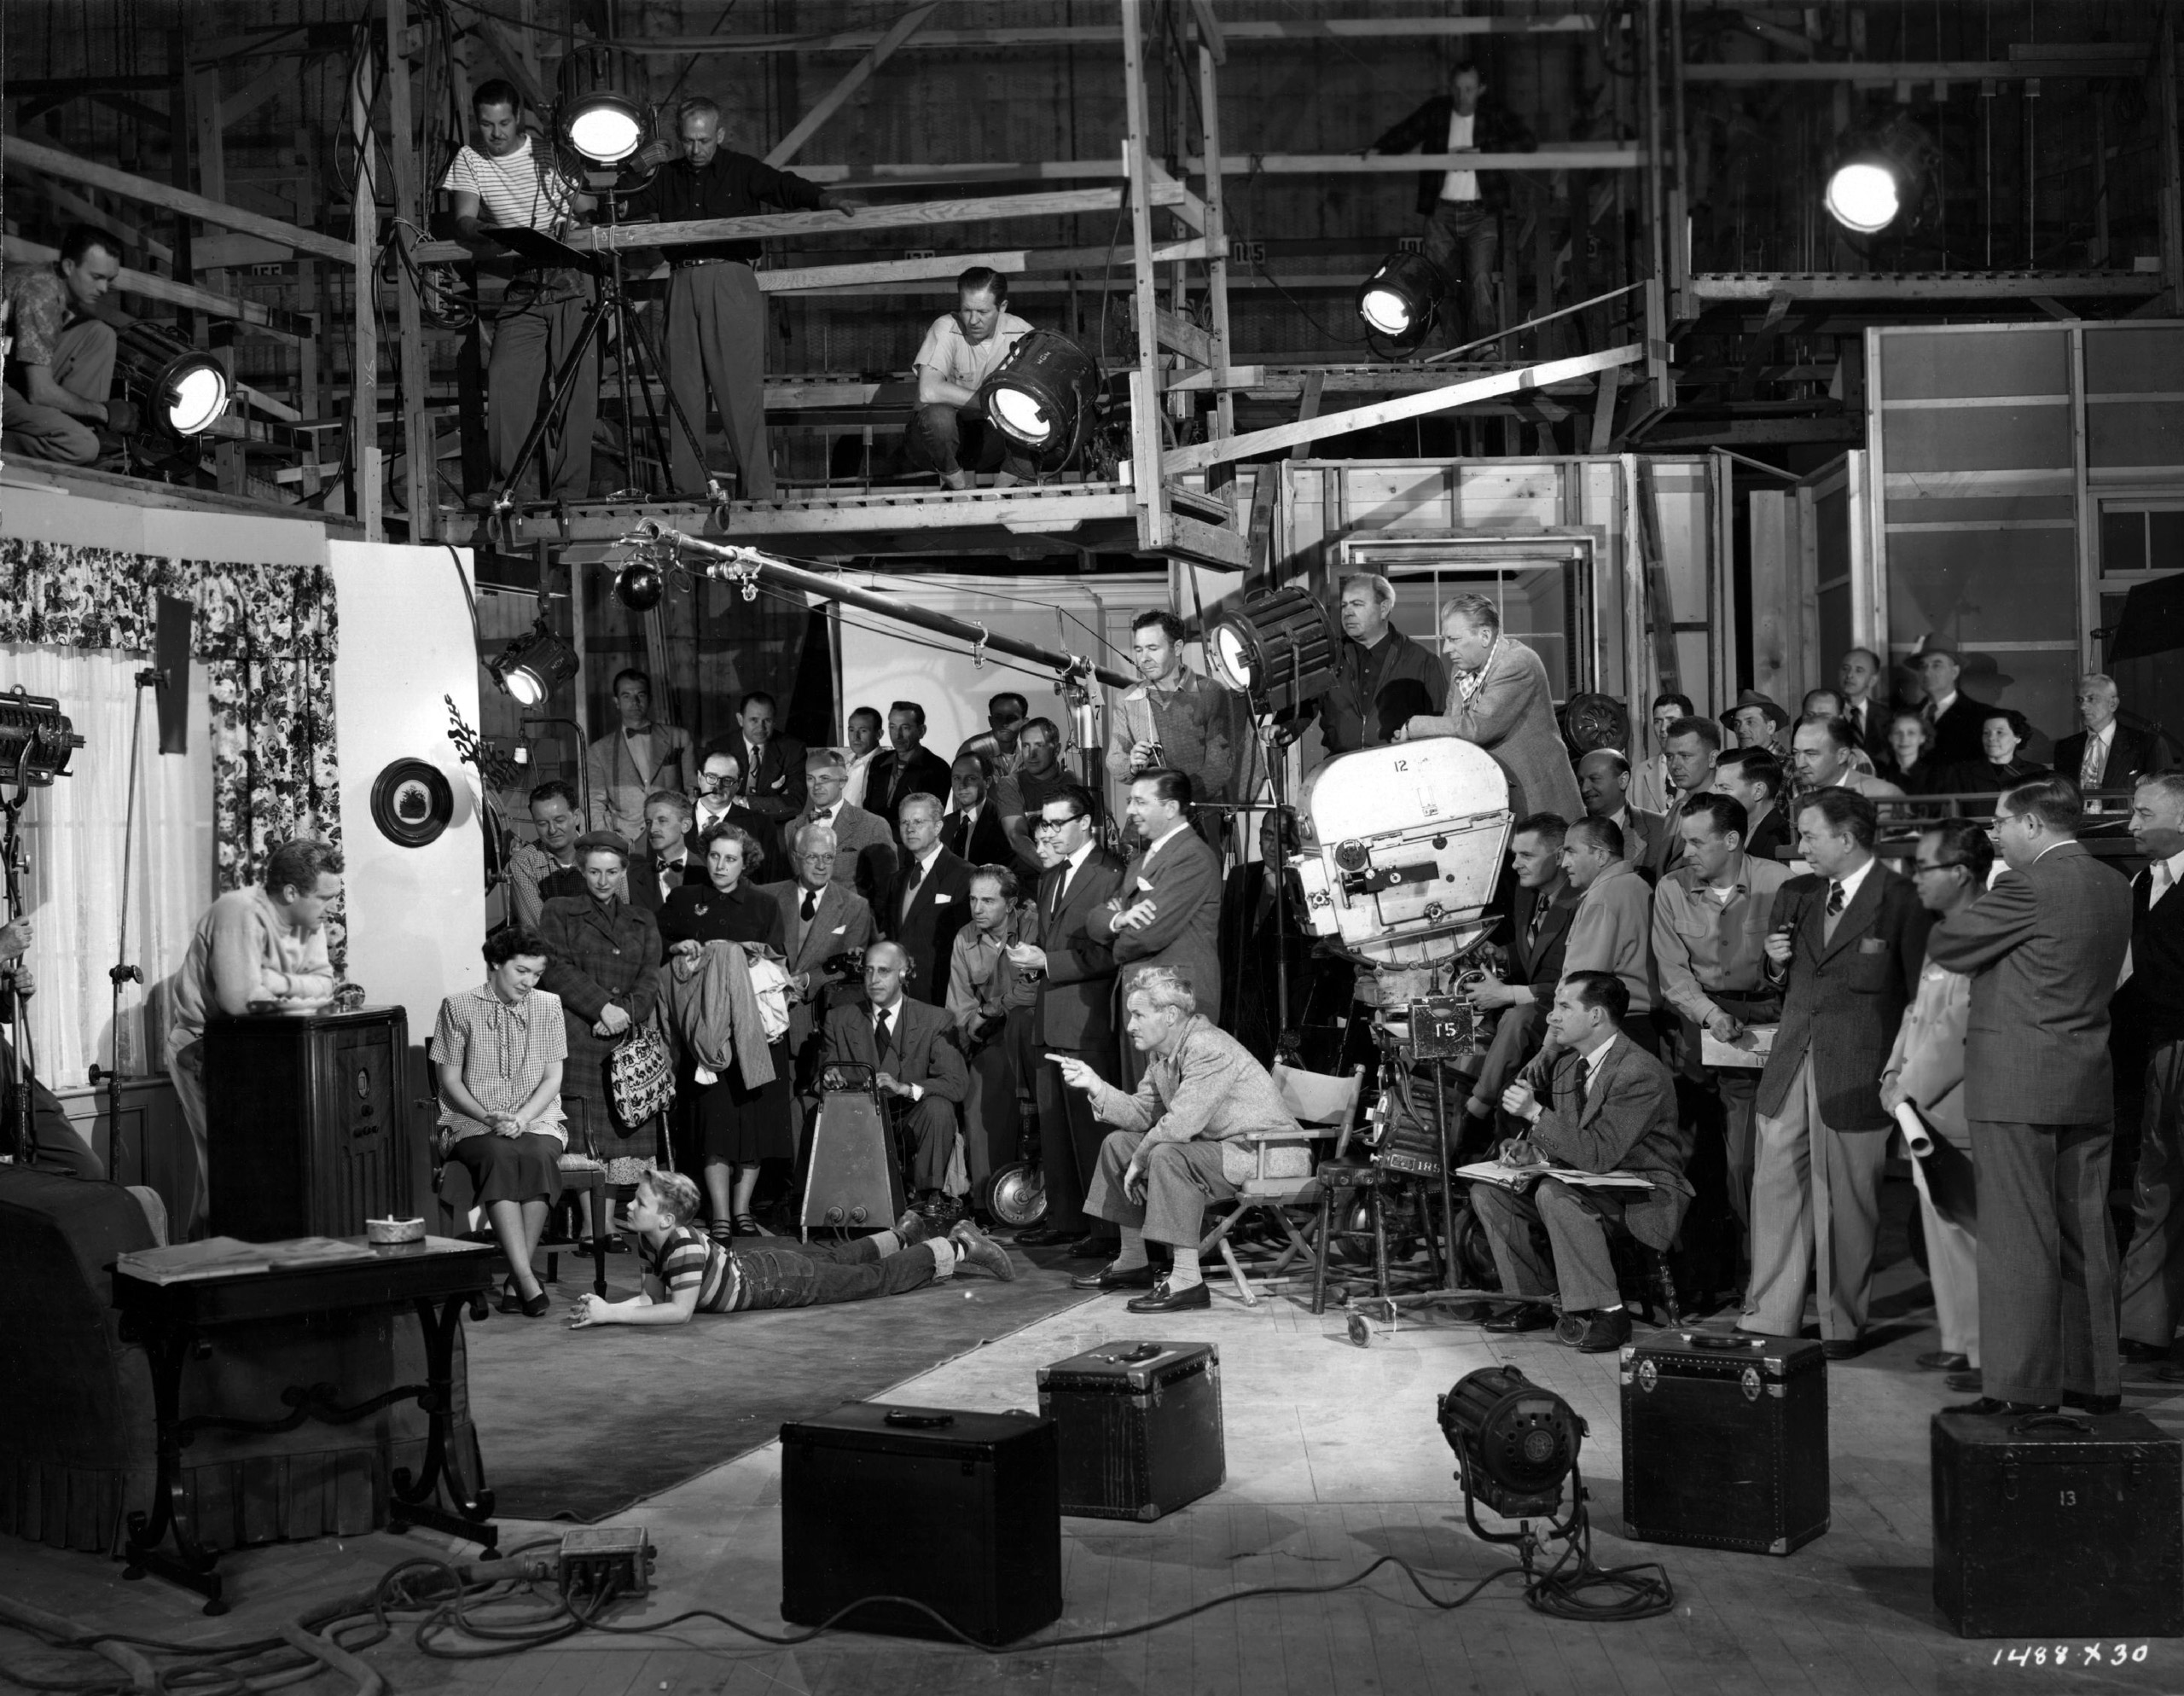 The technicians, craftsmen and studio personnel - the  small army of workers behind  the scenes -  during the filming of MGM's 'The Next Voice You Hear.' 1950.